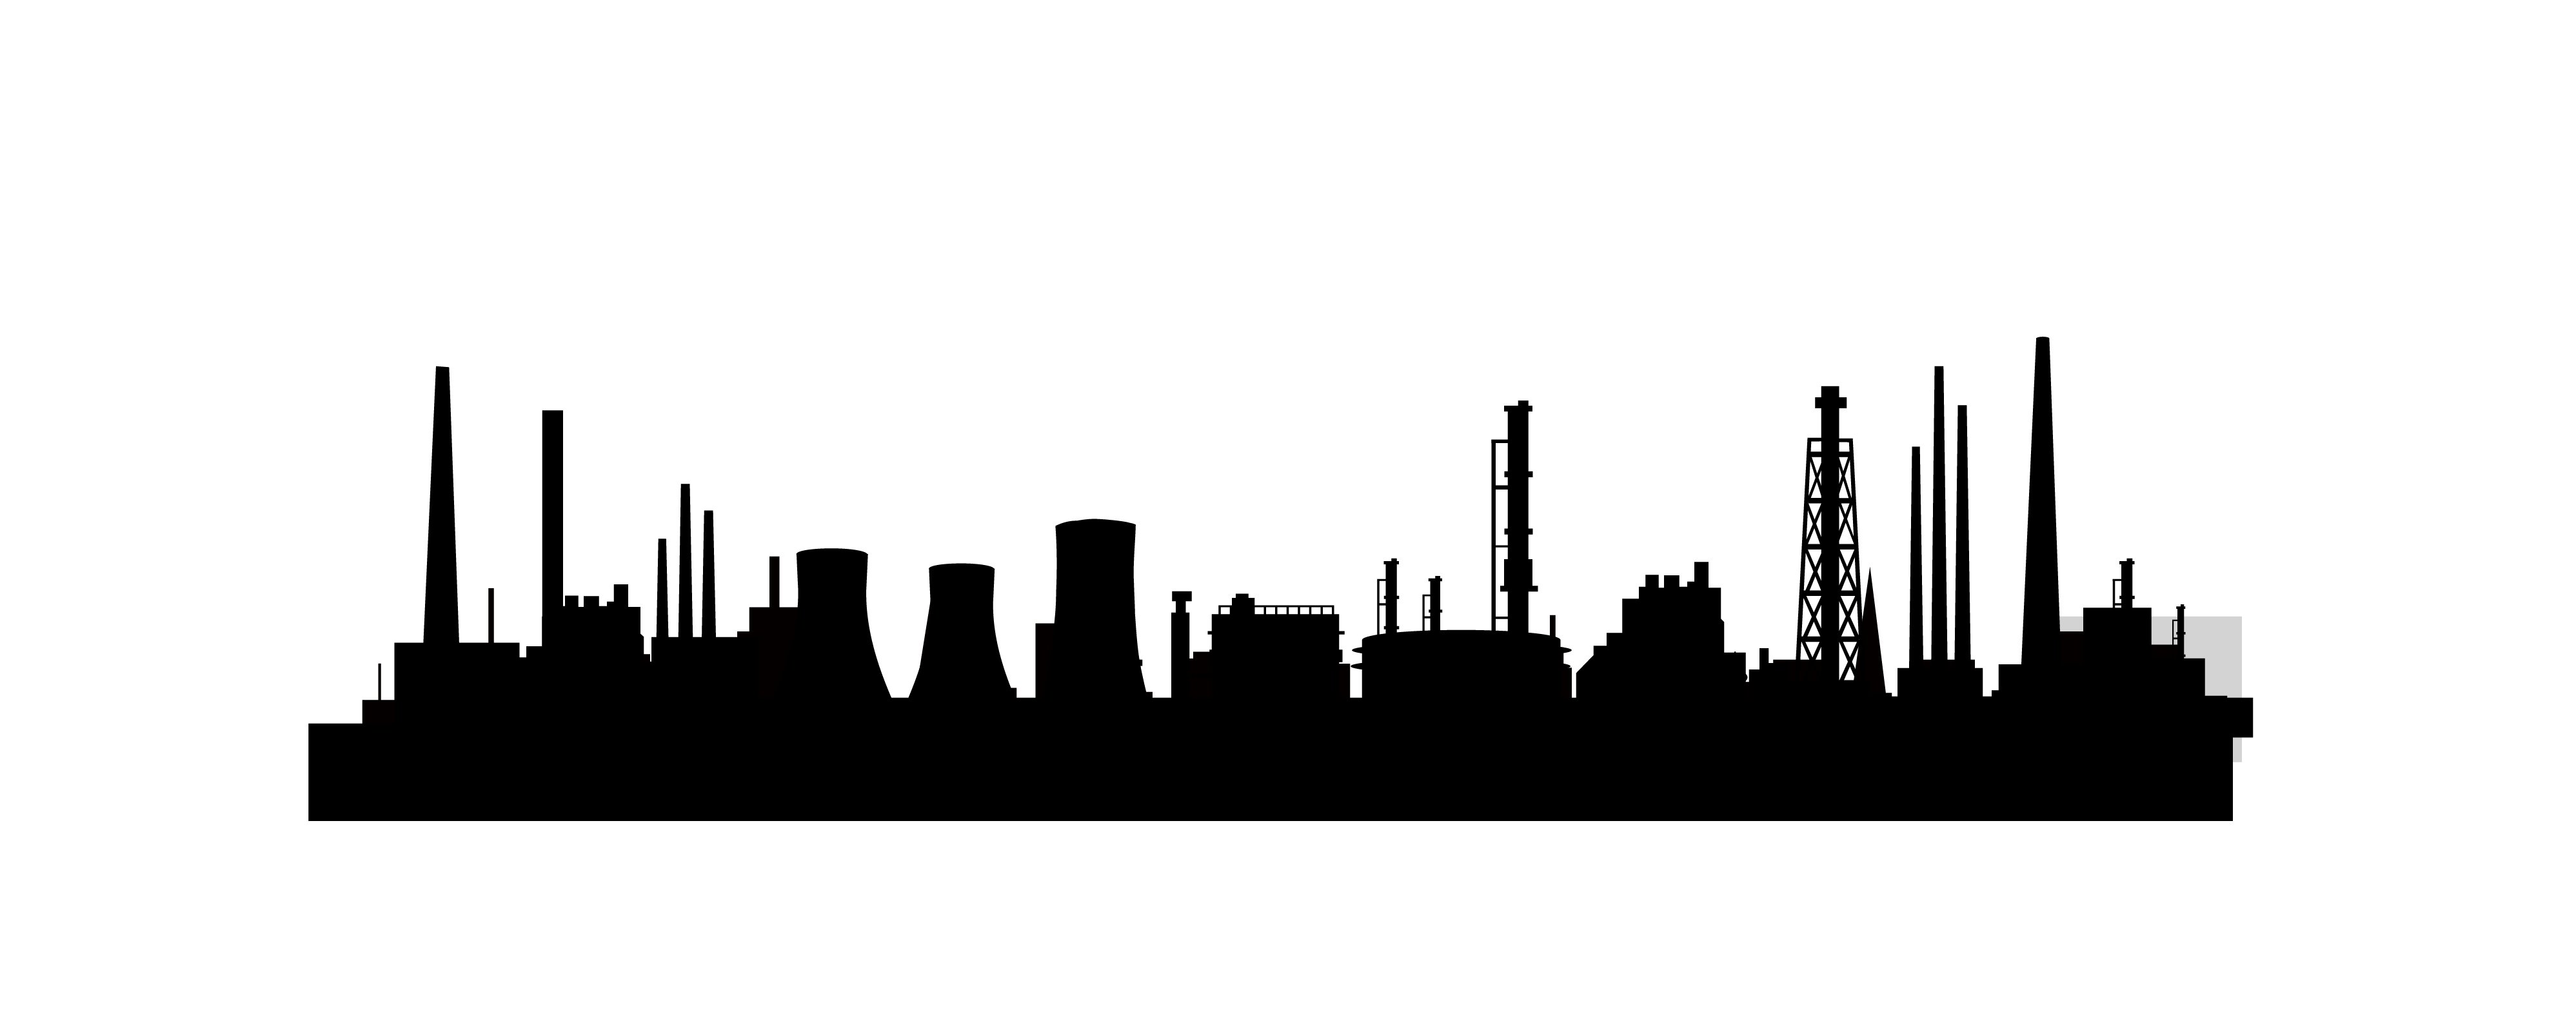 Pittsburgh skyline silhouette clipart images gallery for.